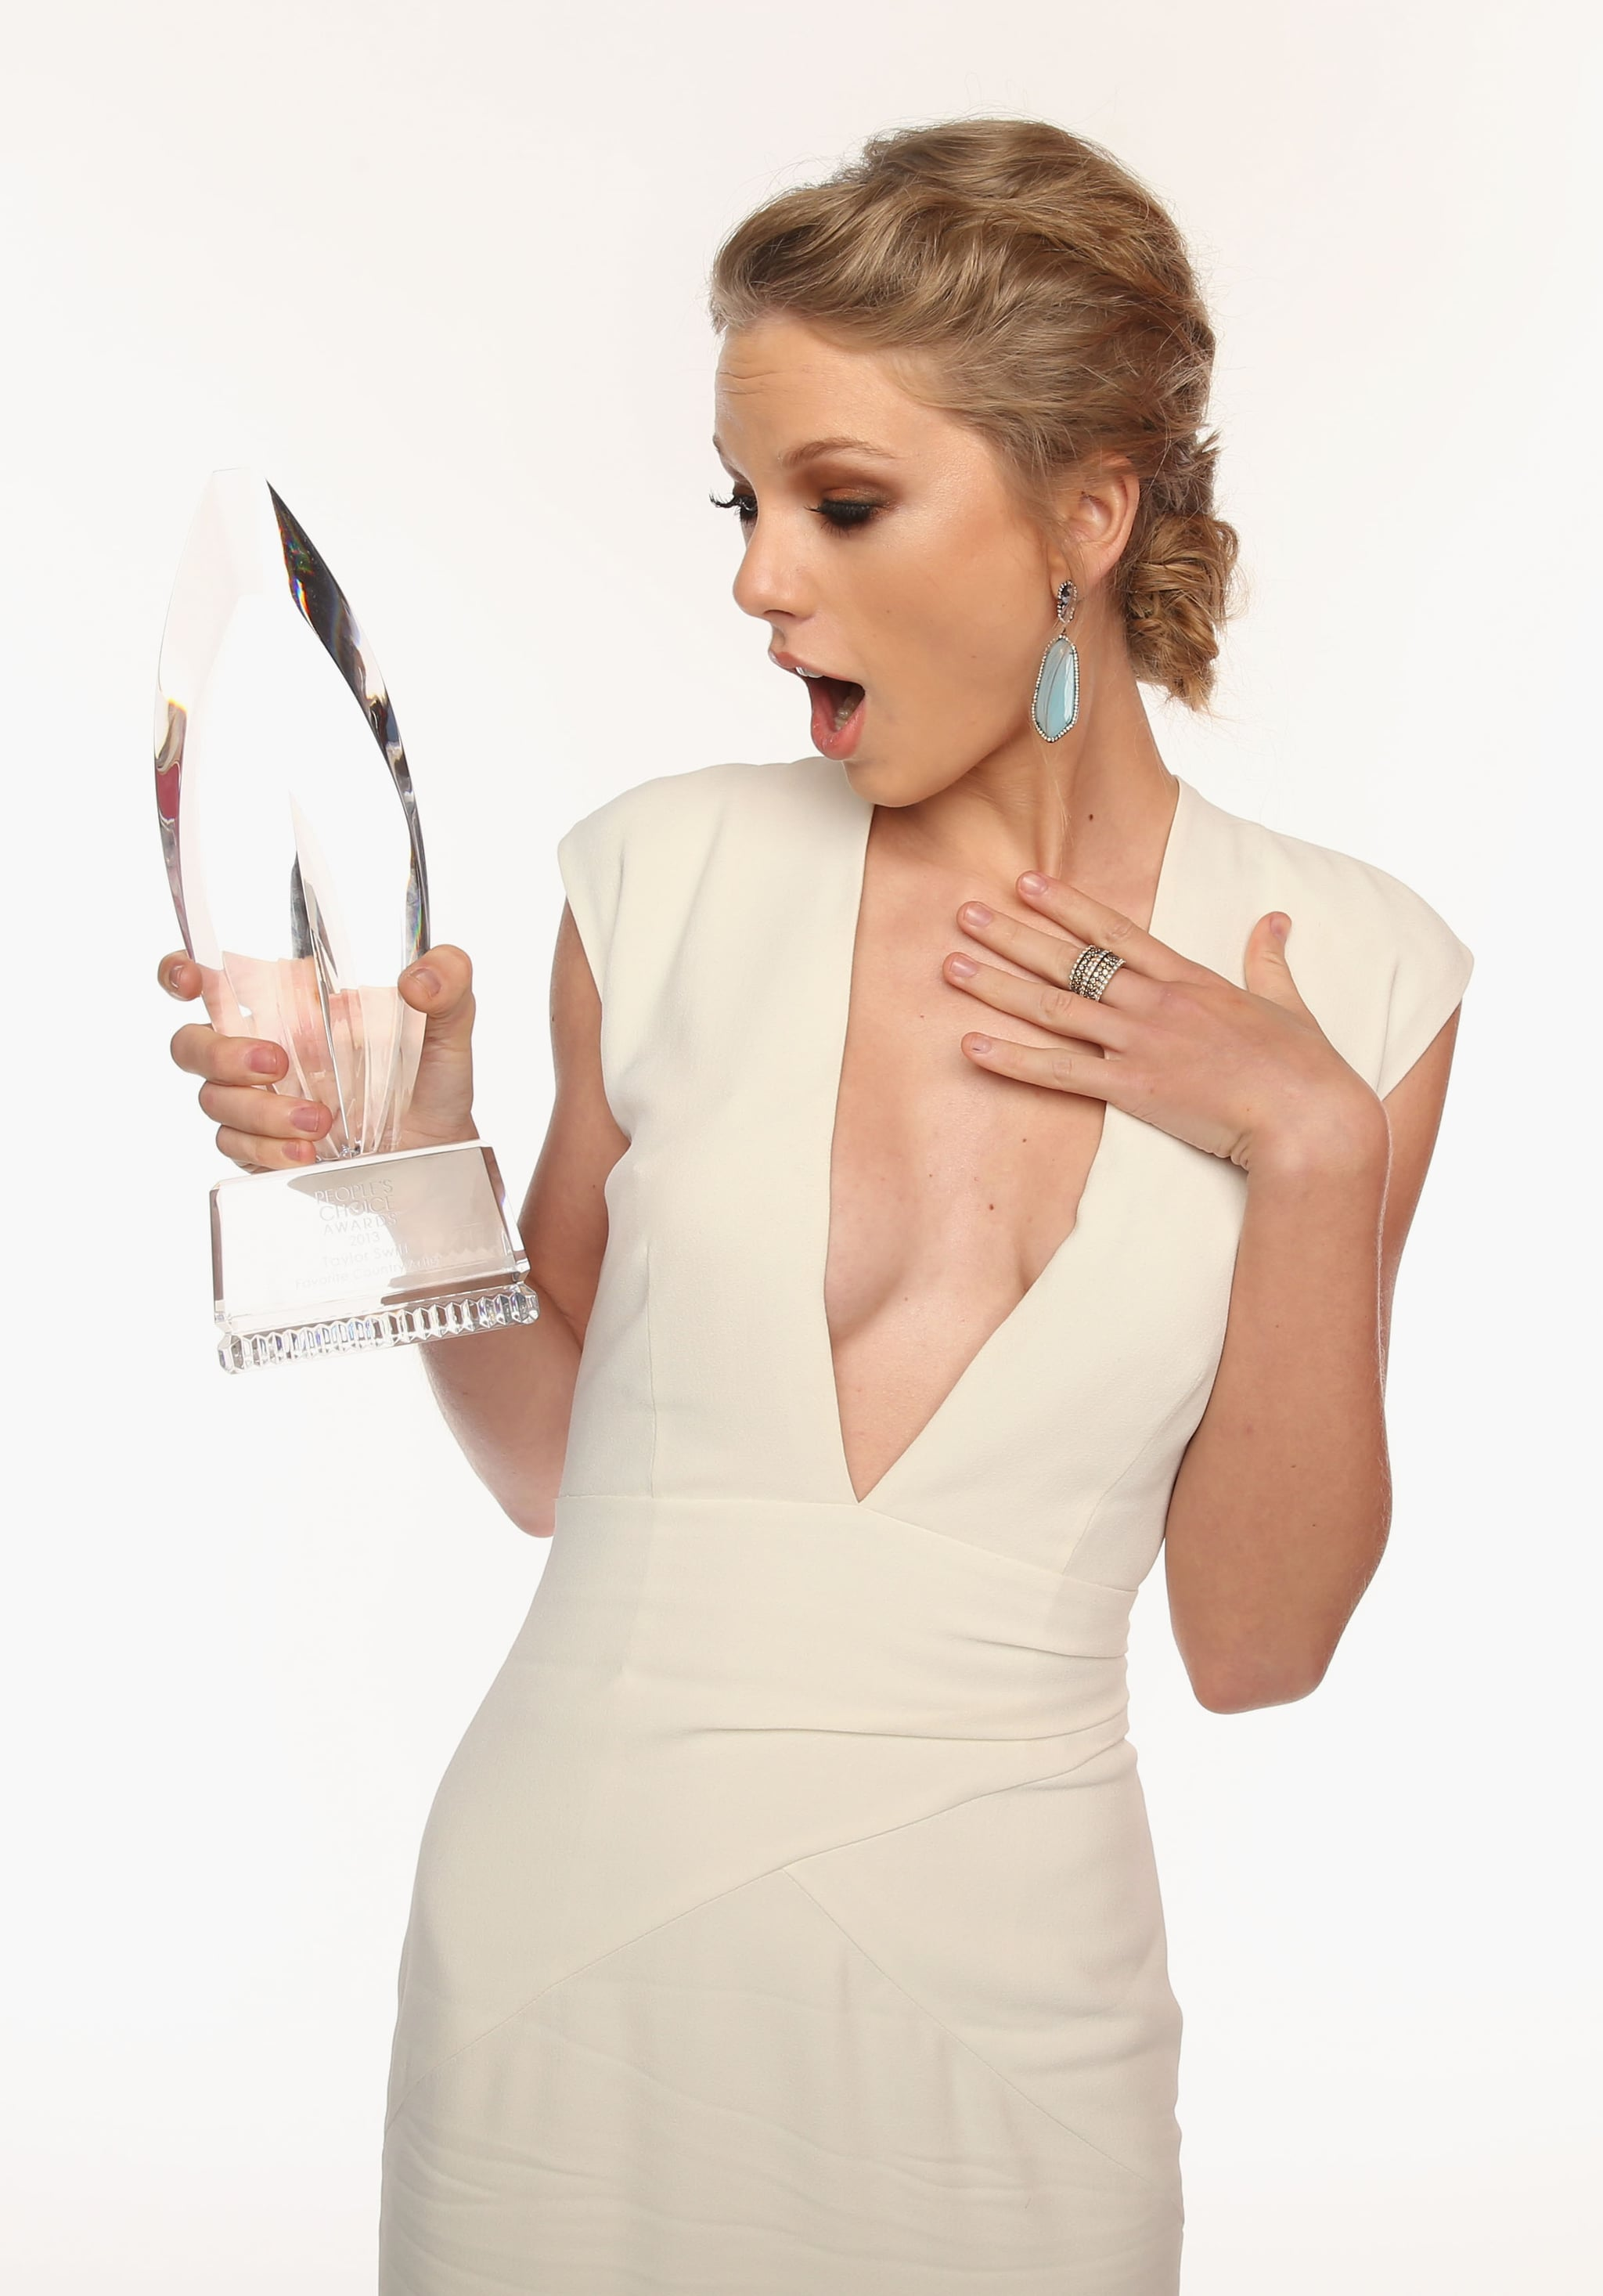 Taylor struck a surprised pose while celebrating her People's Choice Award win in January 2013.